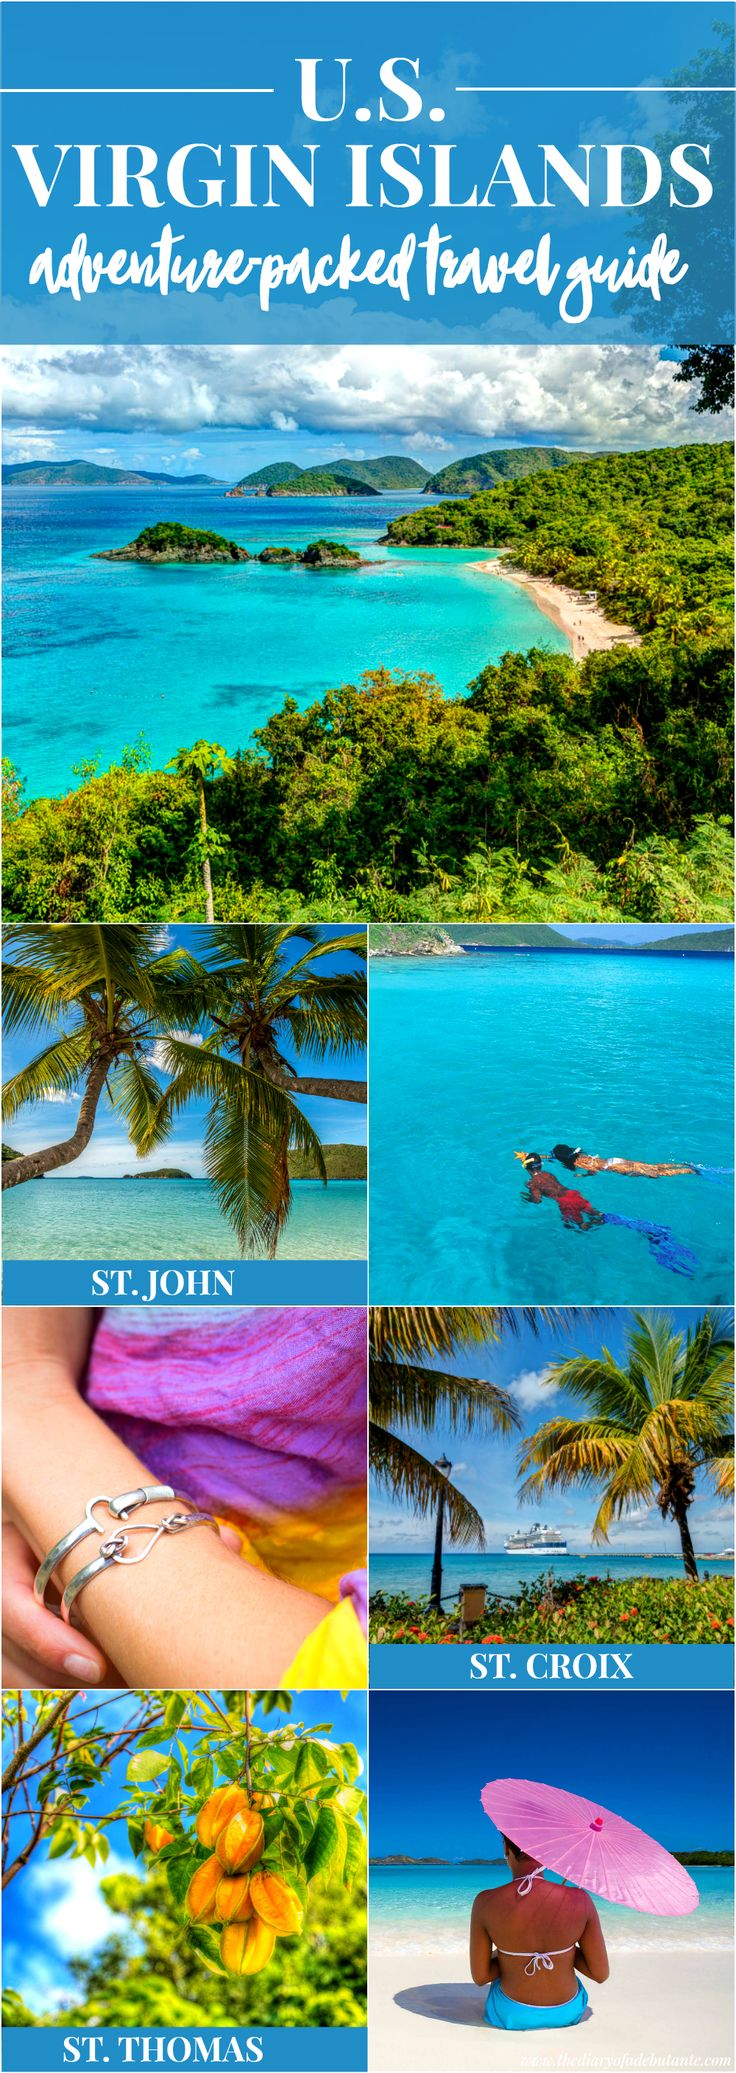 Helpful guide to Caribbean island-hopping in the U.S. Virgin Islands! If you're an adventure seeker, this list of fun things to do in St. John, St. Croix, and St. Thomas is perfect for you | Adventure (Fun Travel Ideas)